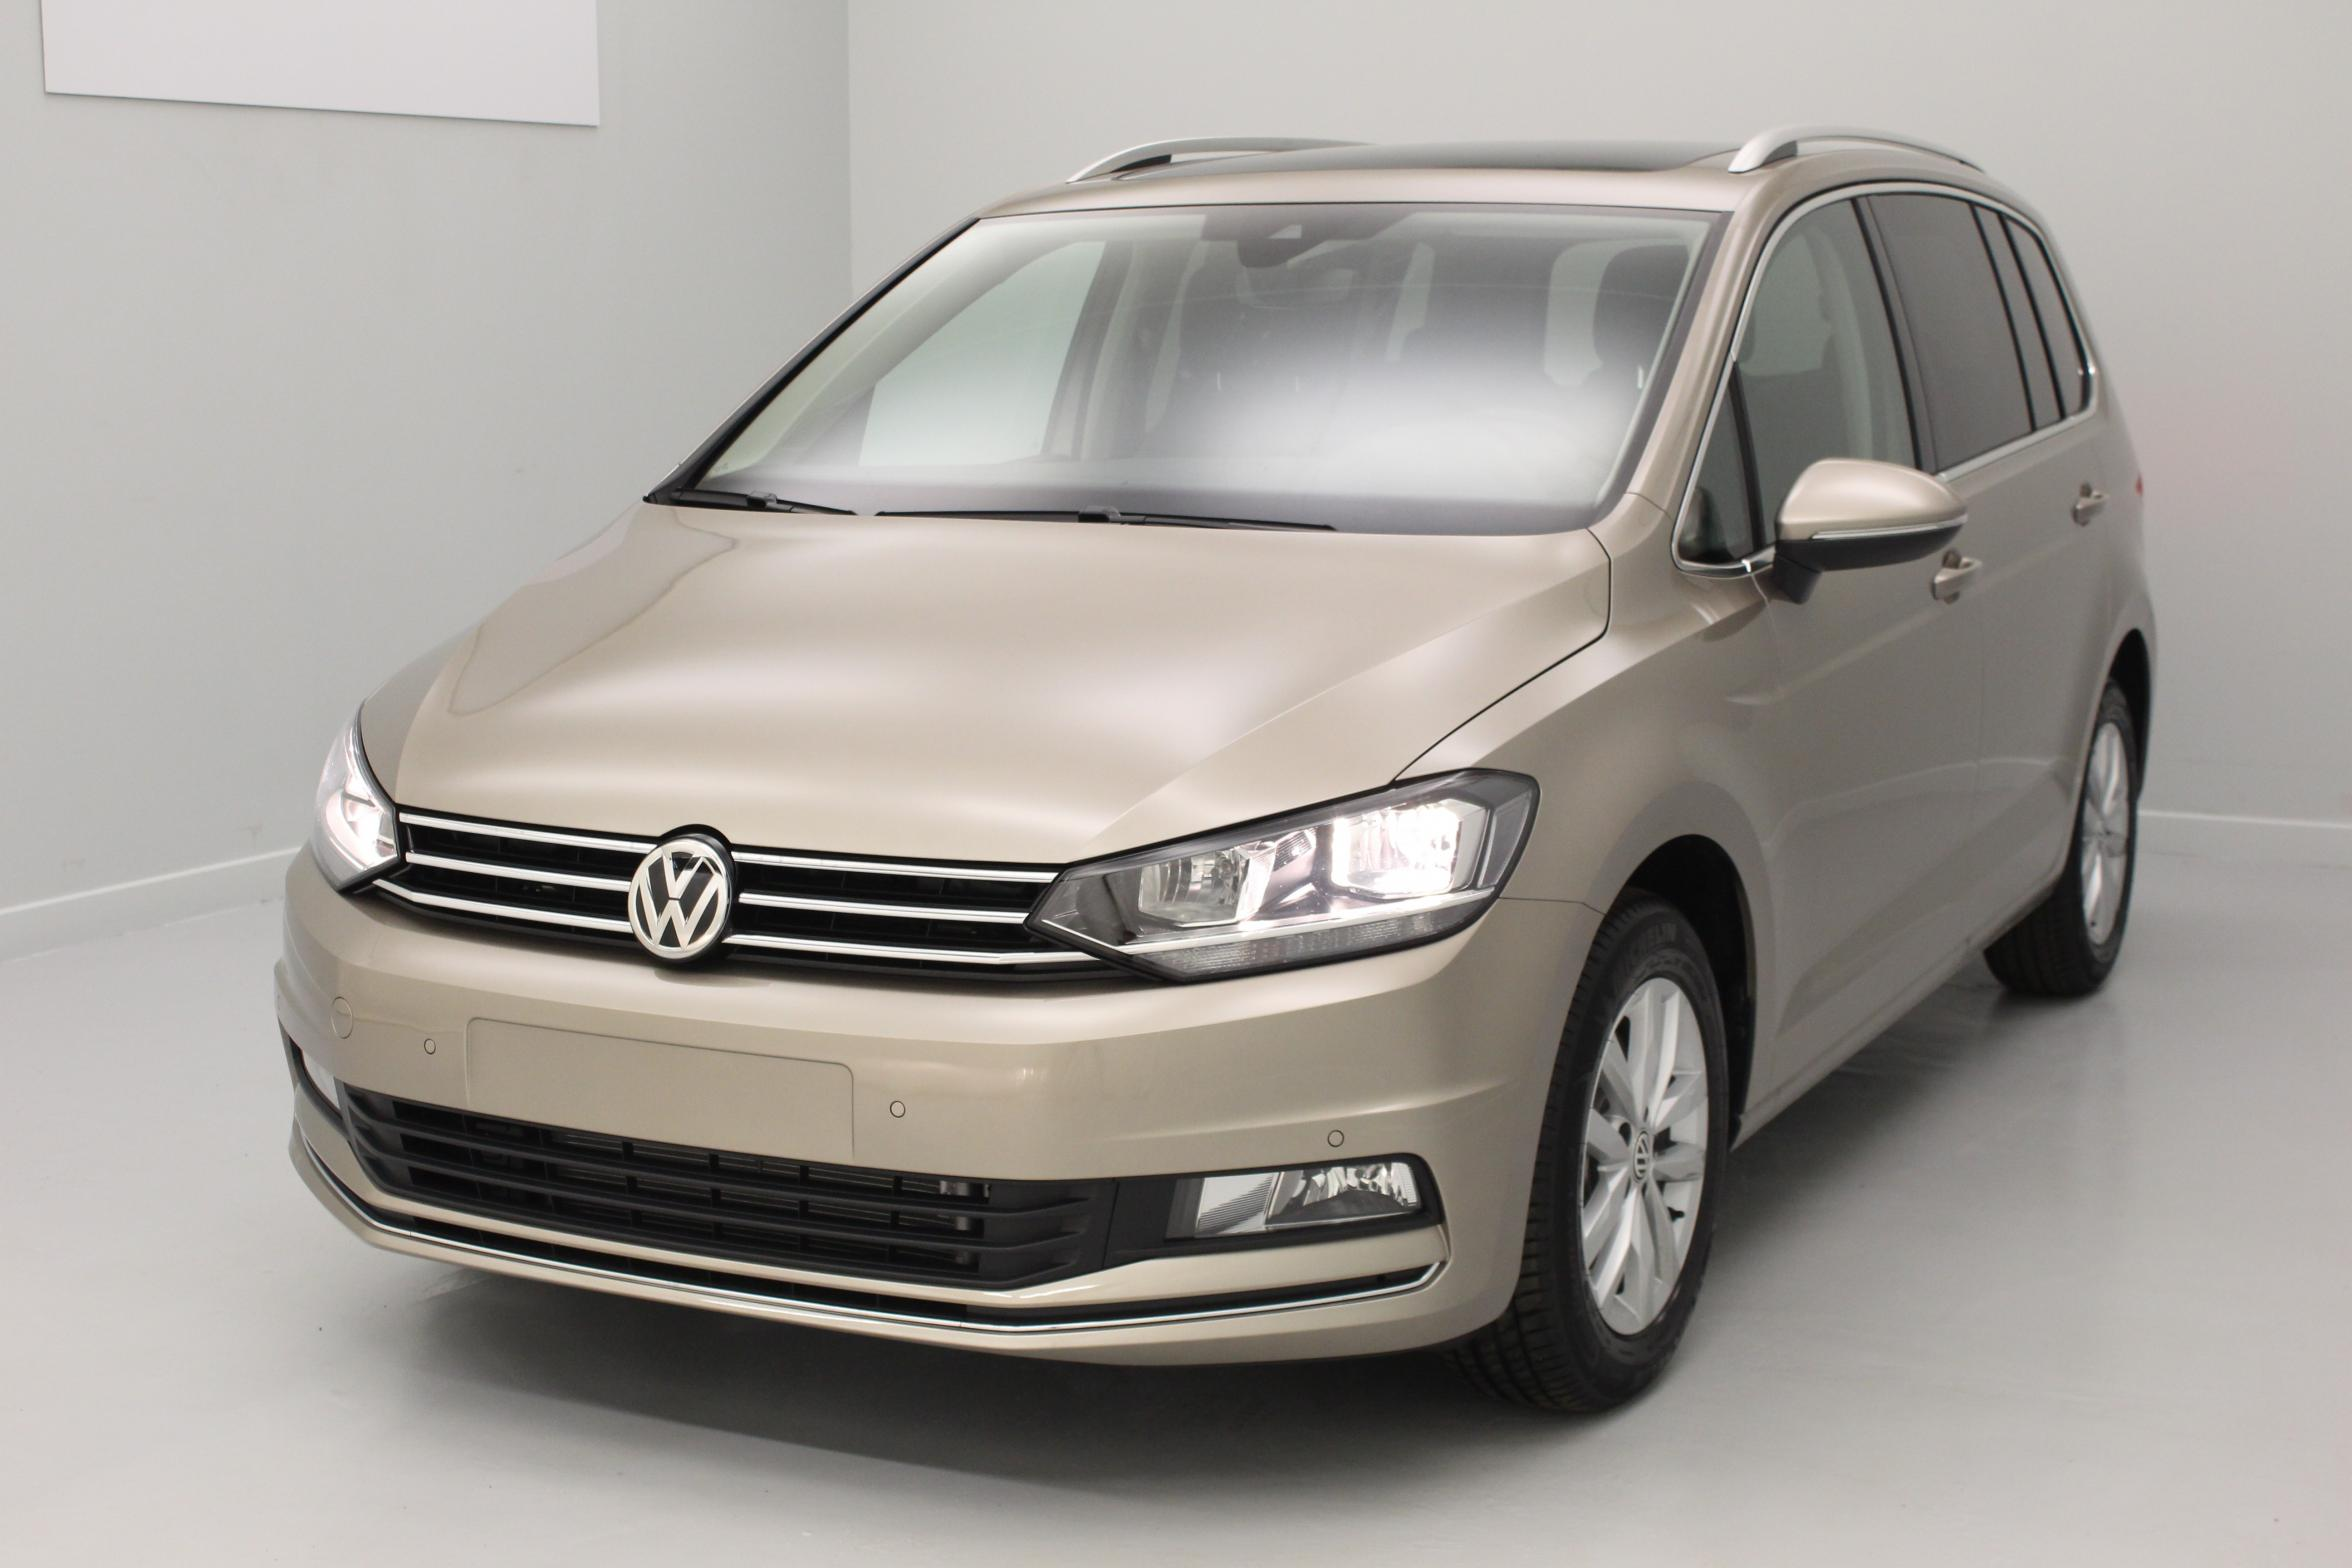 Volkswagen touran 7 places diesel for Touran interieur 7 places